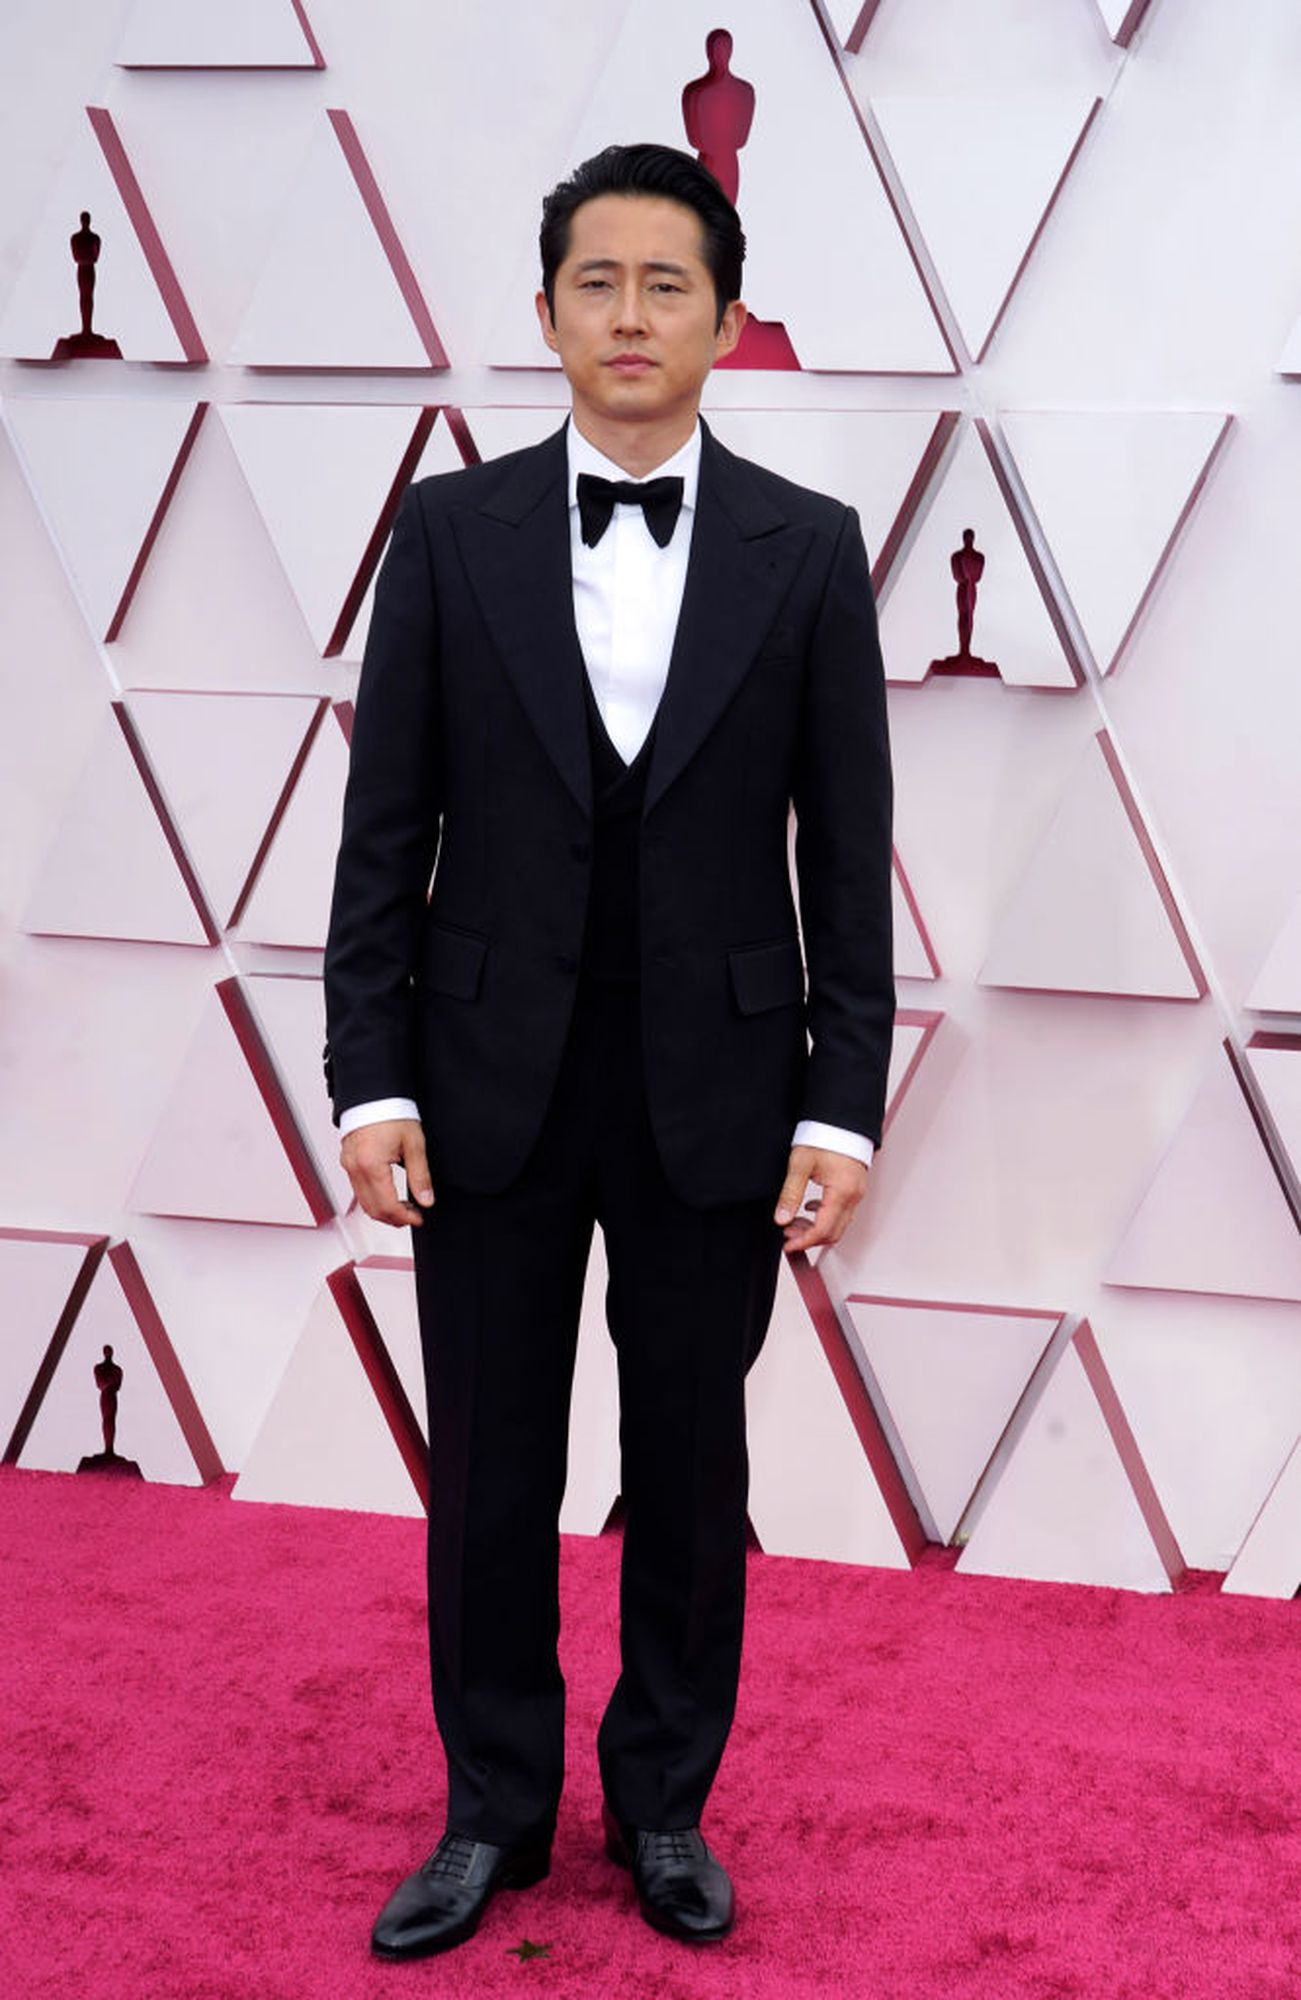 LOS ANGELES, CA - April 25: Stephen Yun attends the 93rd Annual Academy Awards at Union Station on April 25, 2021 in Los Angeles, California.  (Photo by Chris Bisillo-Ball / Getty Images)